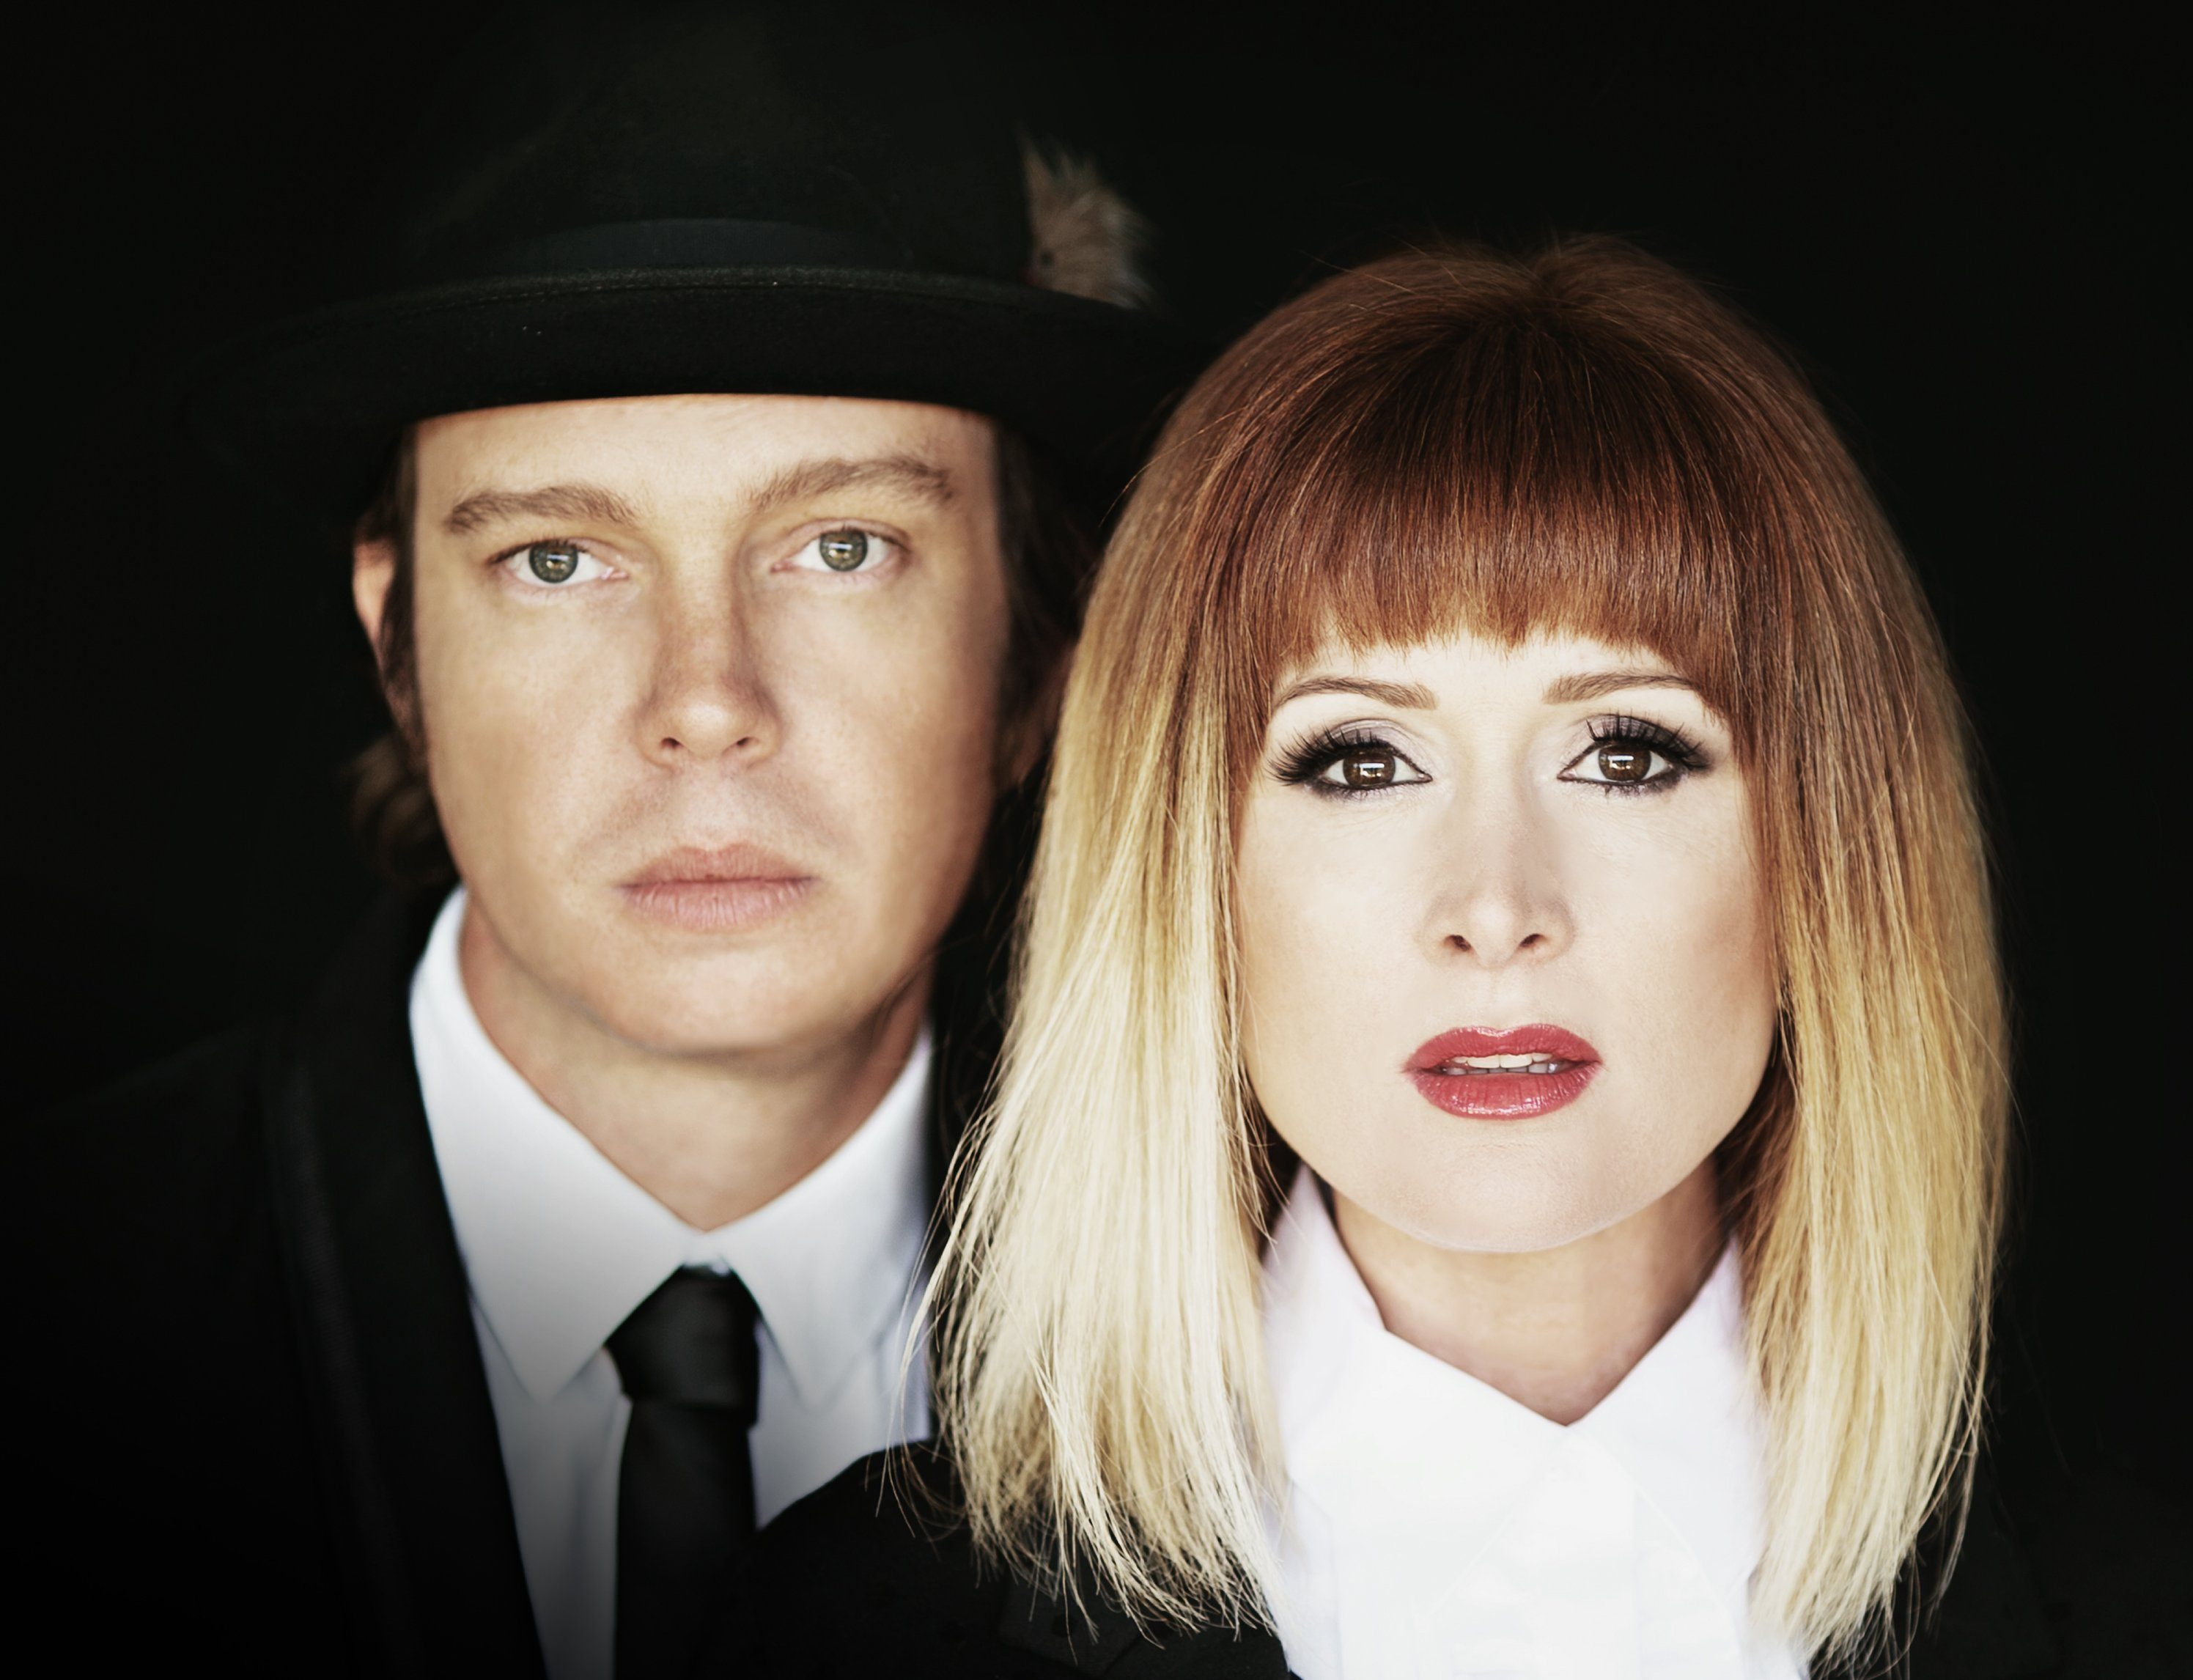 O'Shea Release 'I Will Not Give Up' Following Their First ARIA Nomination!